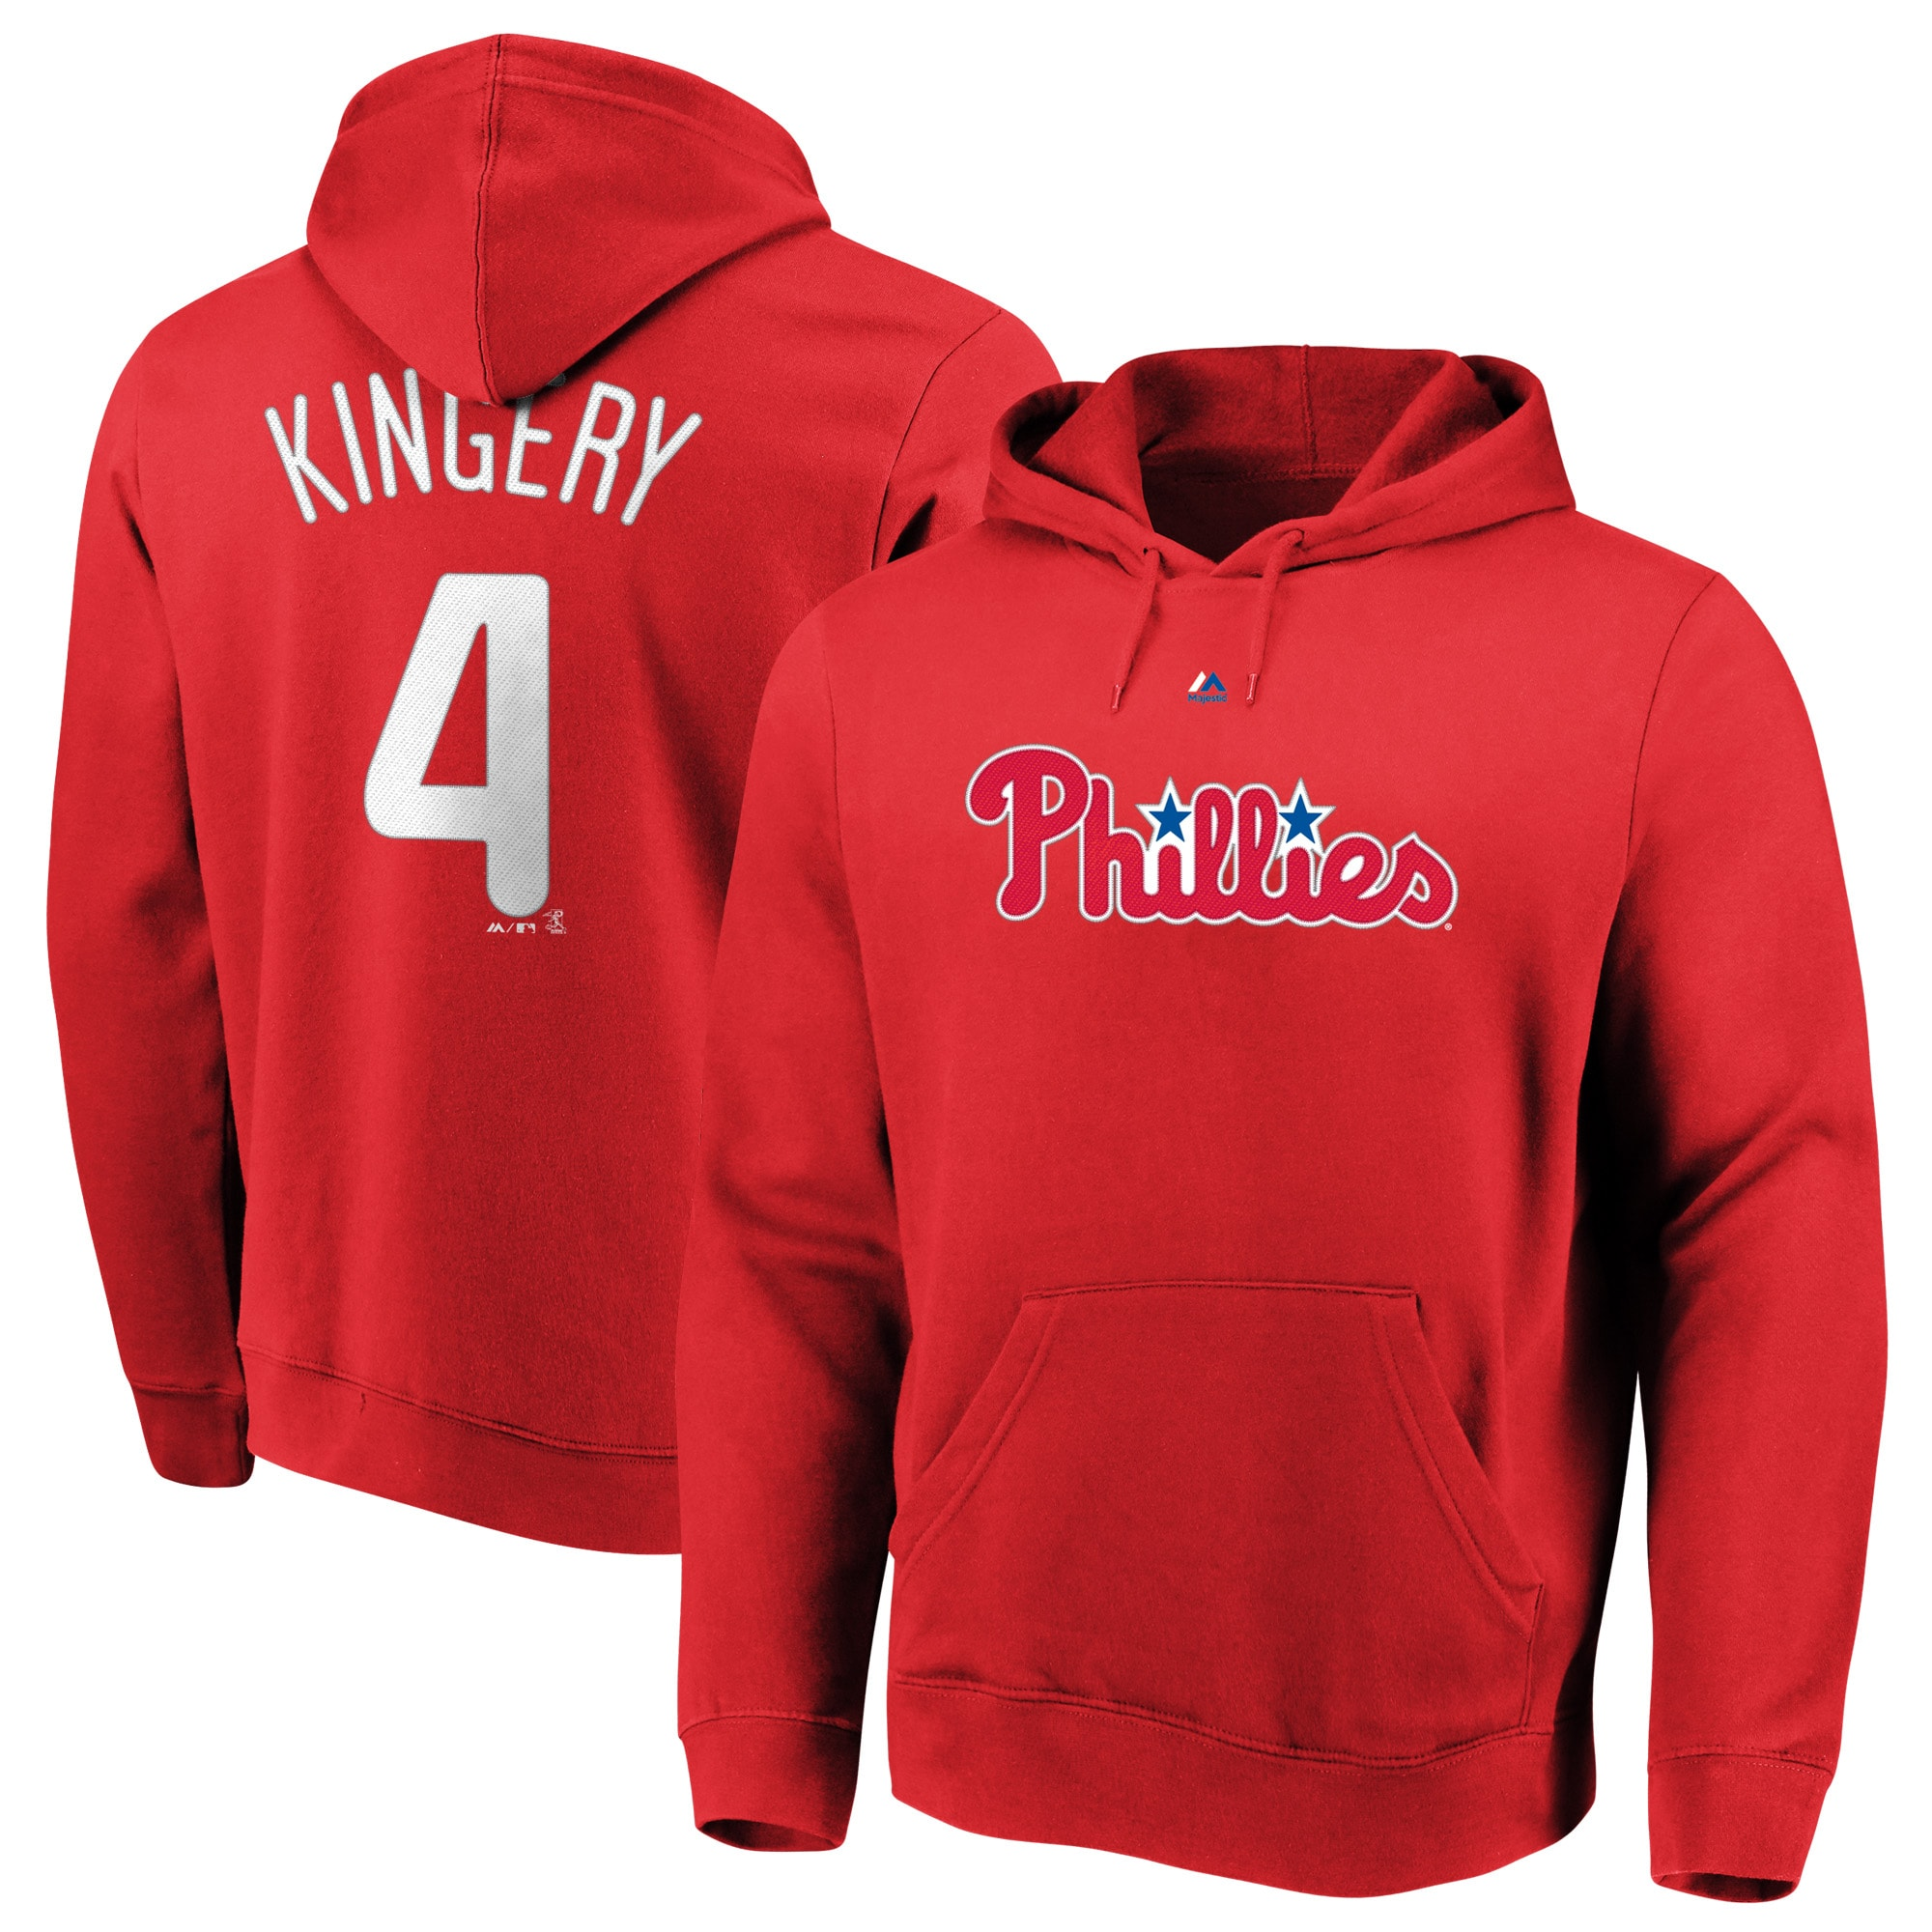 Scott Kingery Philadelphia Phillies Majestic Authentic Name & Number Pullover Hoodie - Red